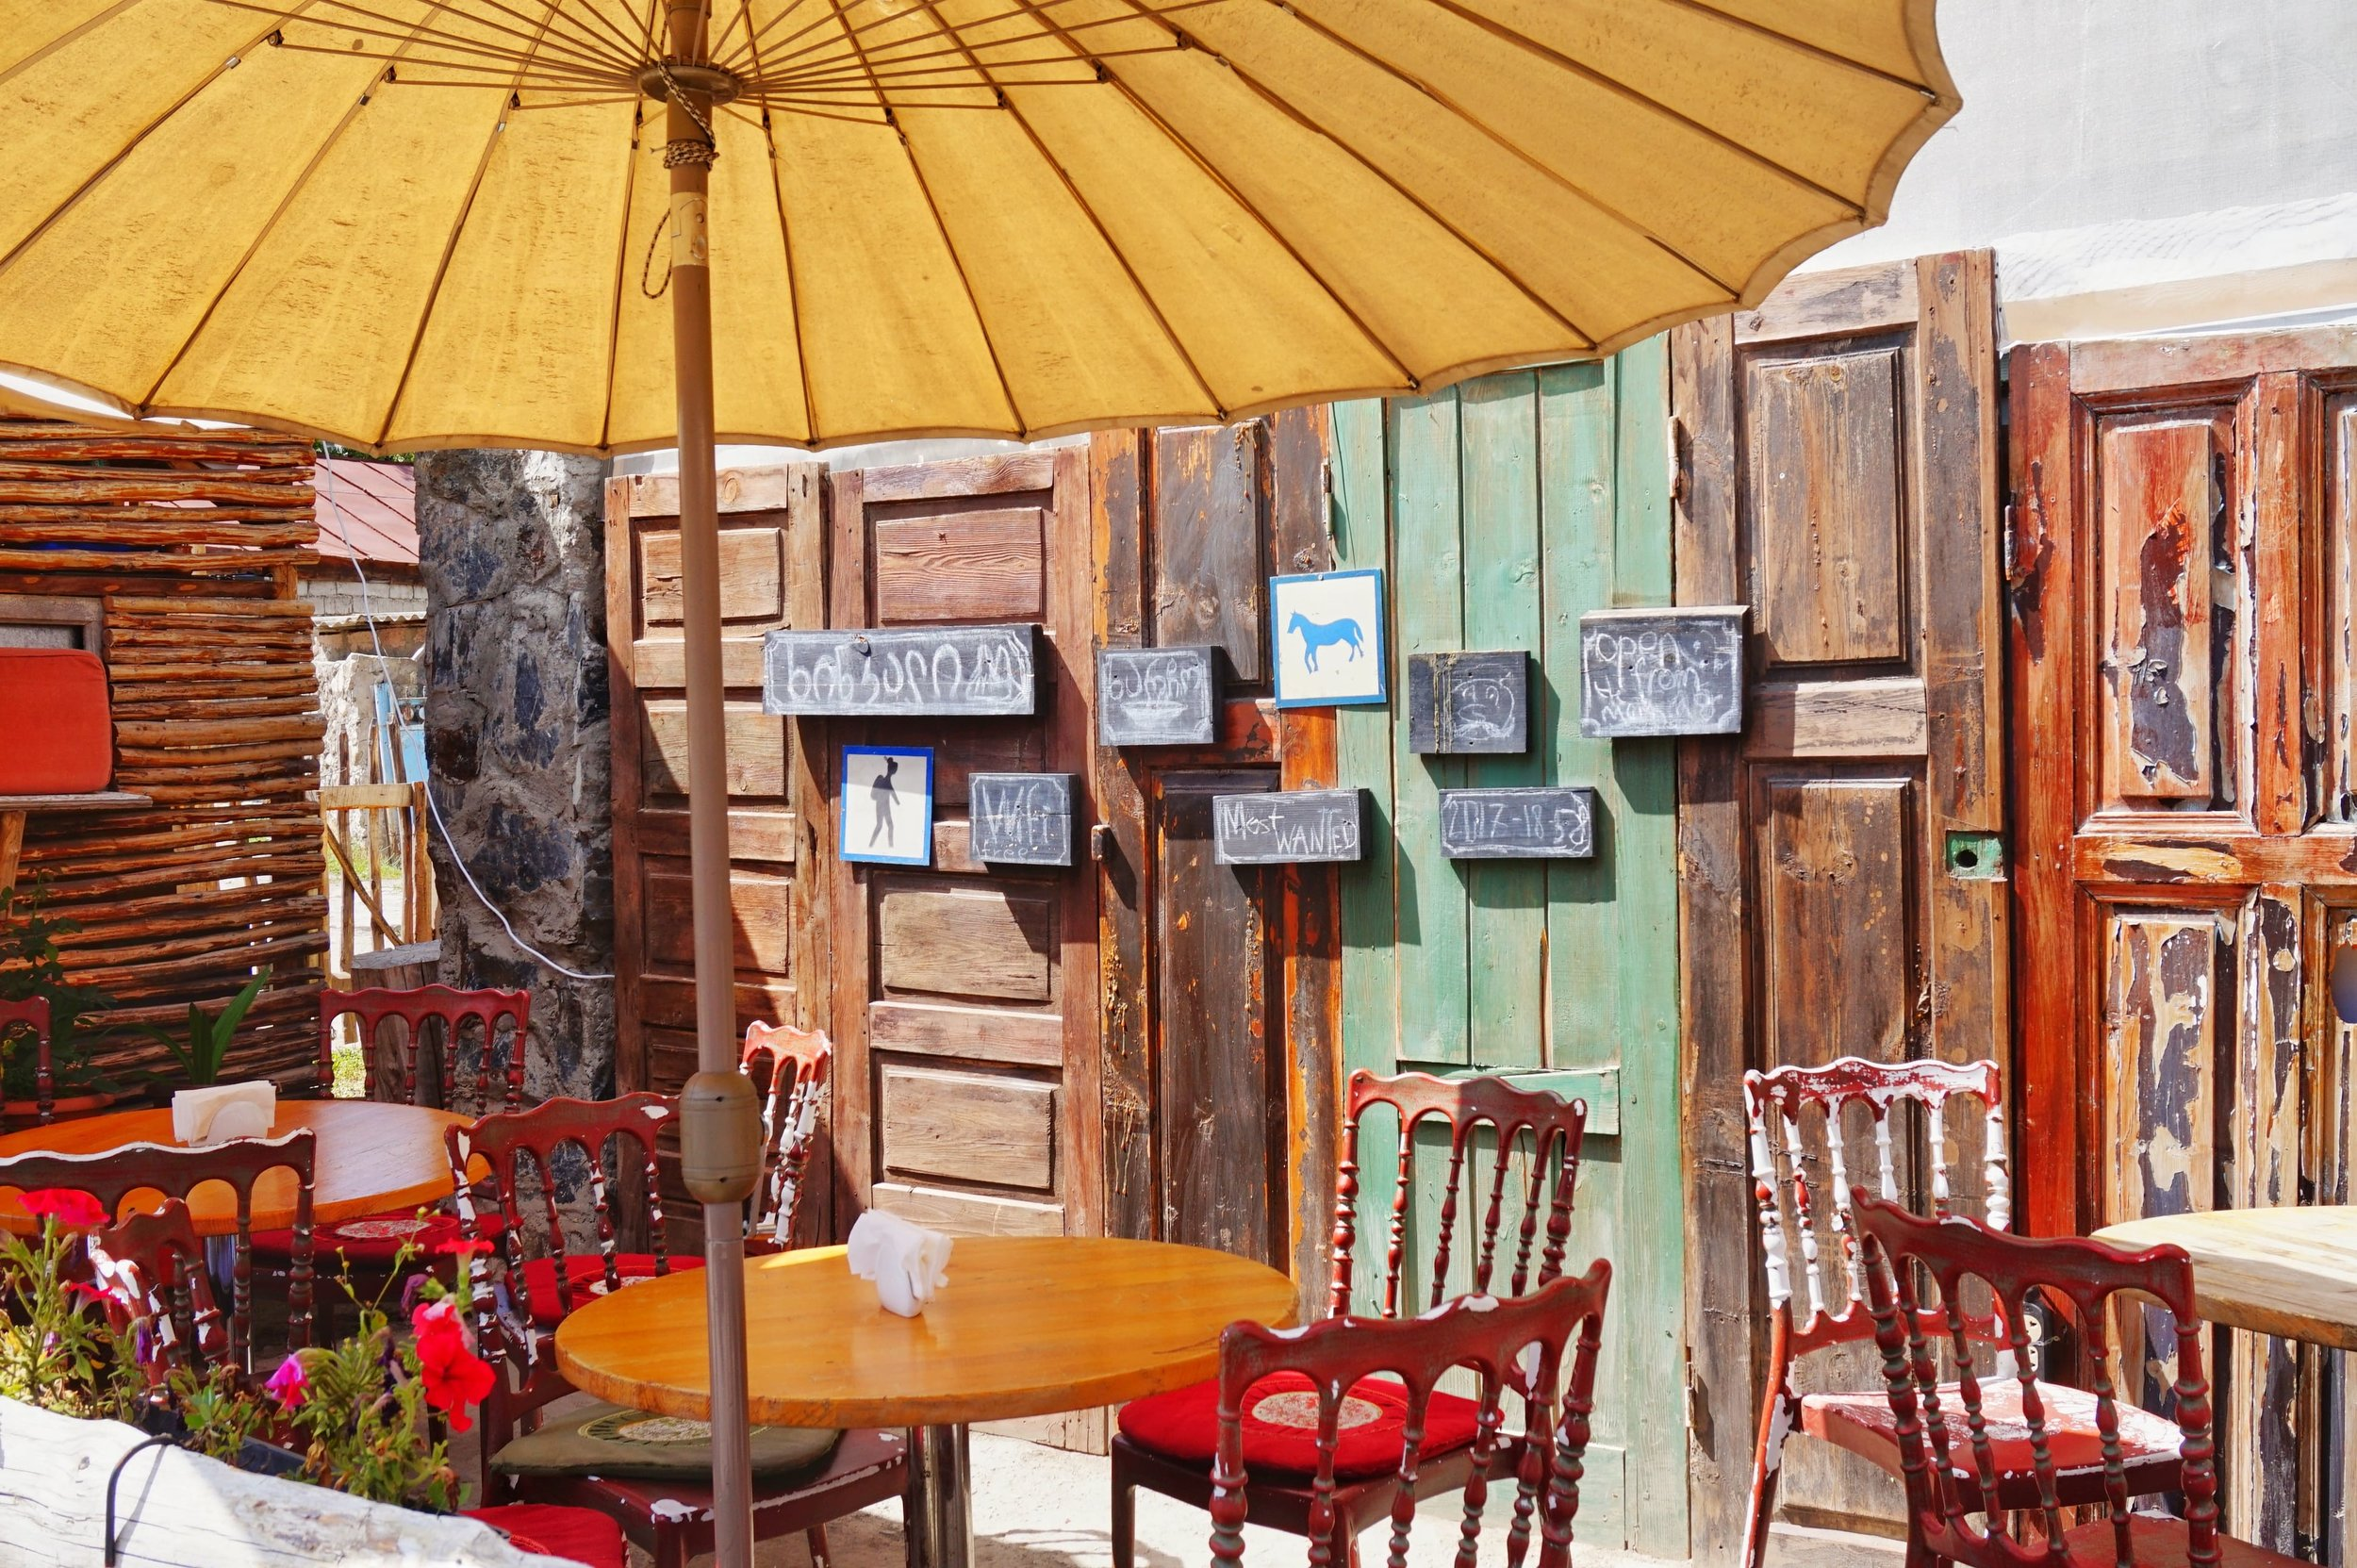 Great cafes to hang out in Mestia.